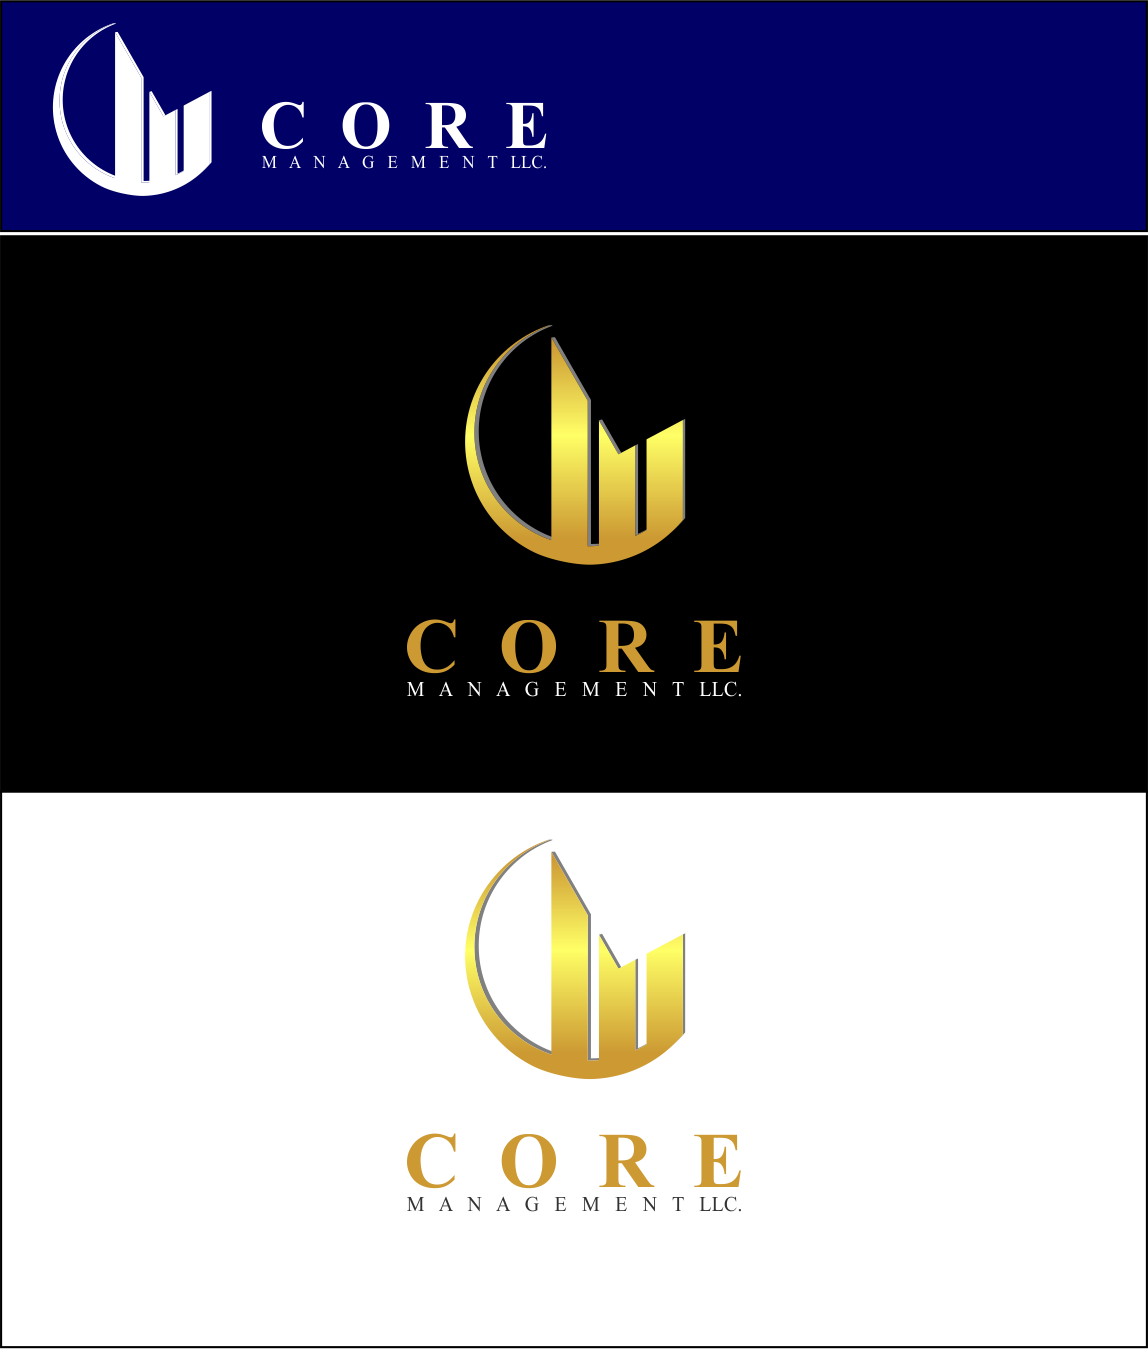 Logo Design by Agus Martoyo - Entry No. 125 in the Logo Design Contest Creative Logo Design for CORE Management, LLC.